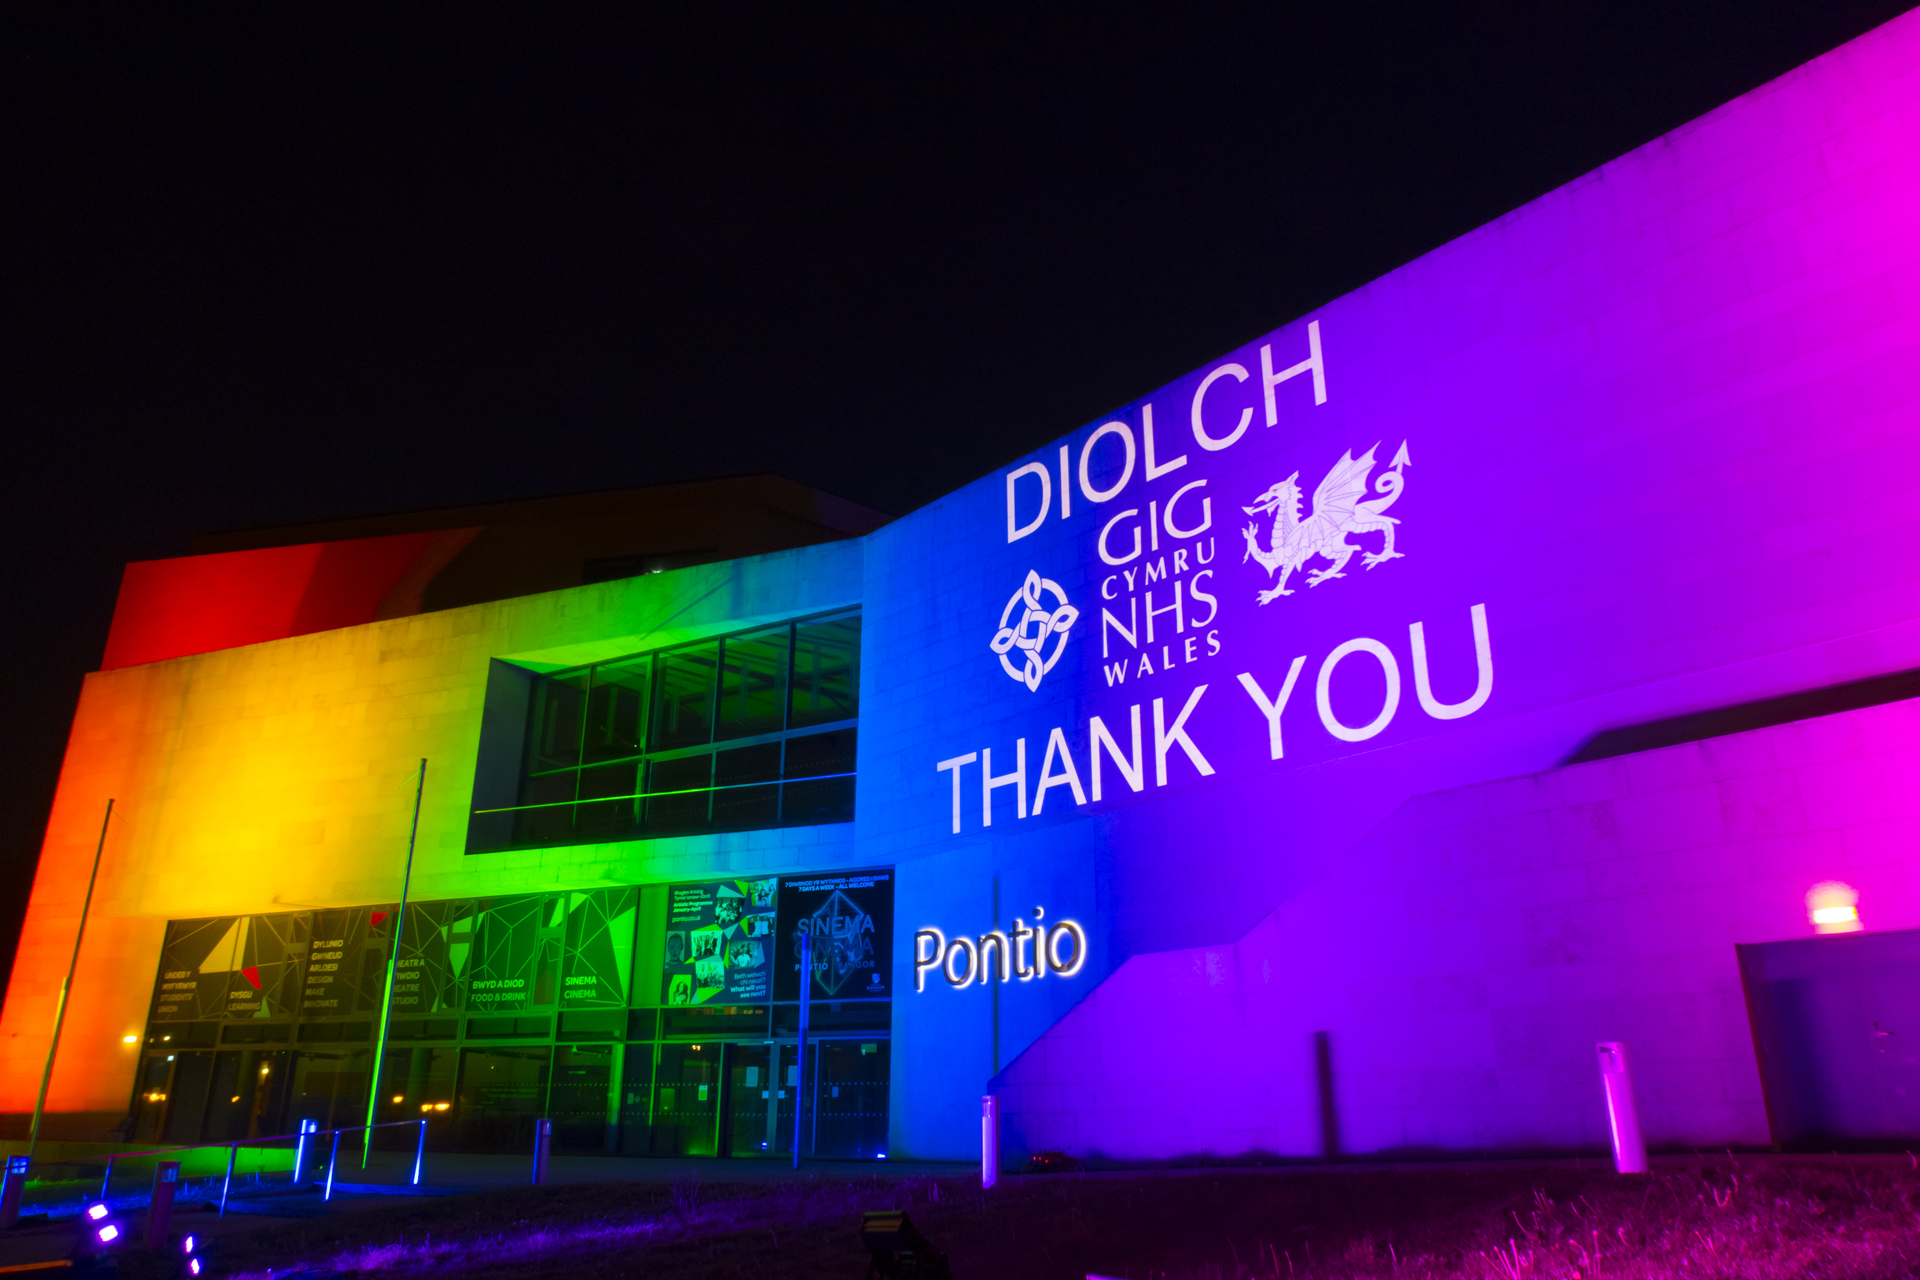 Outdoor projection & lighting on Pontio Theatre, Bangor, to say thank you to the NHS, rainbow coloured lighting, white logo.